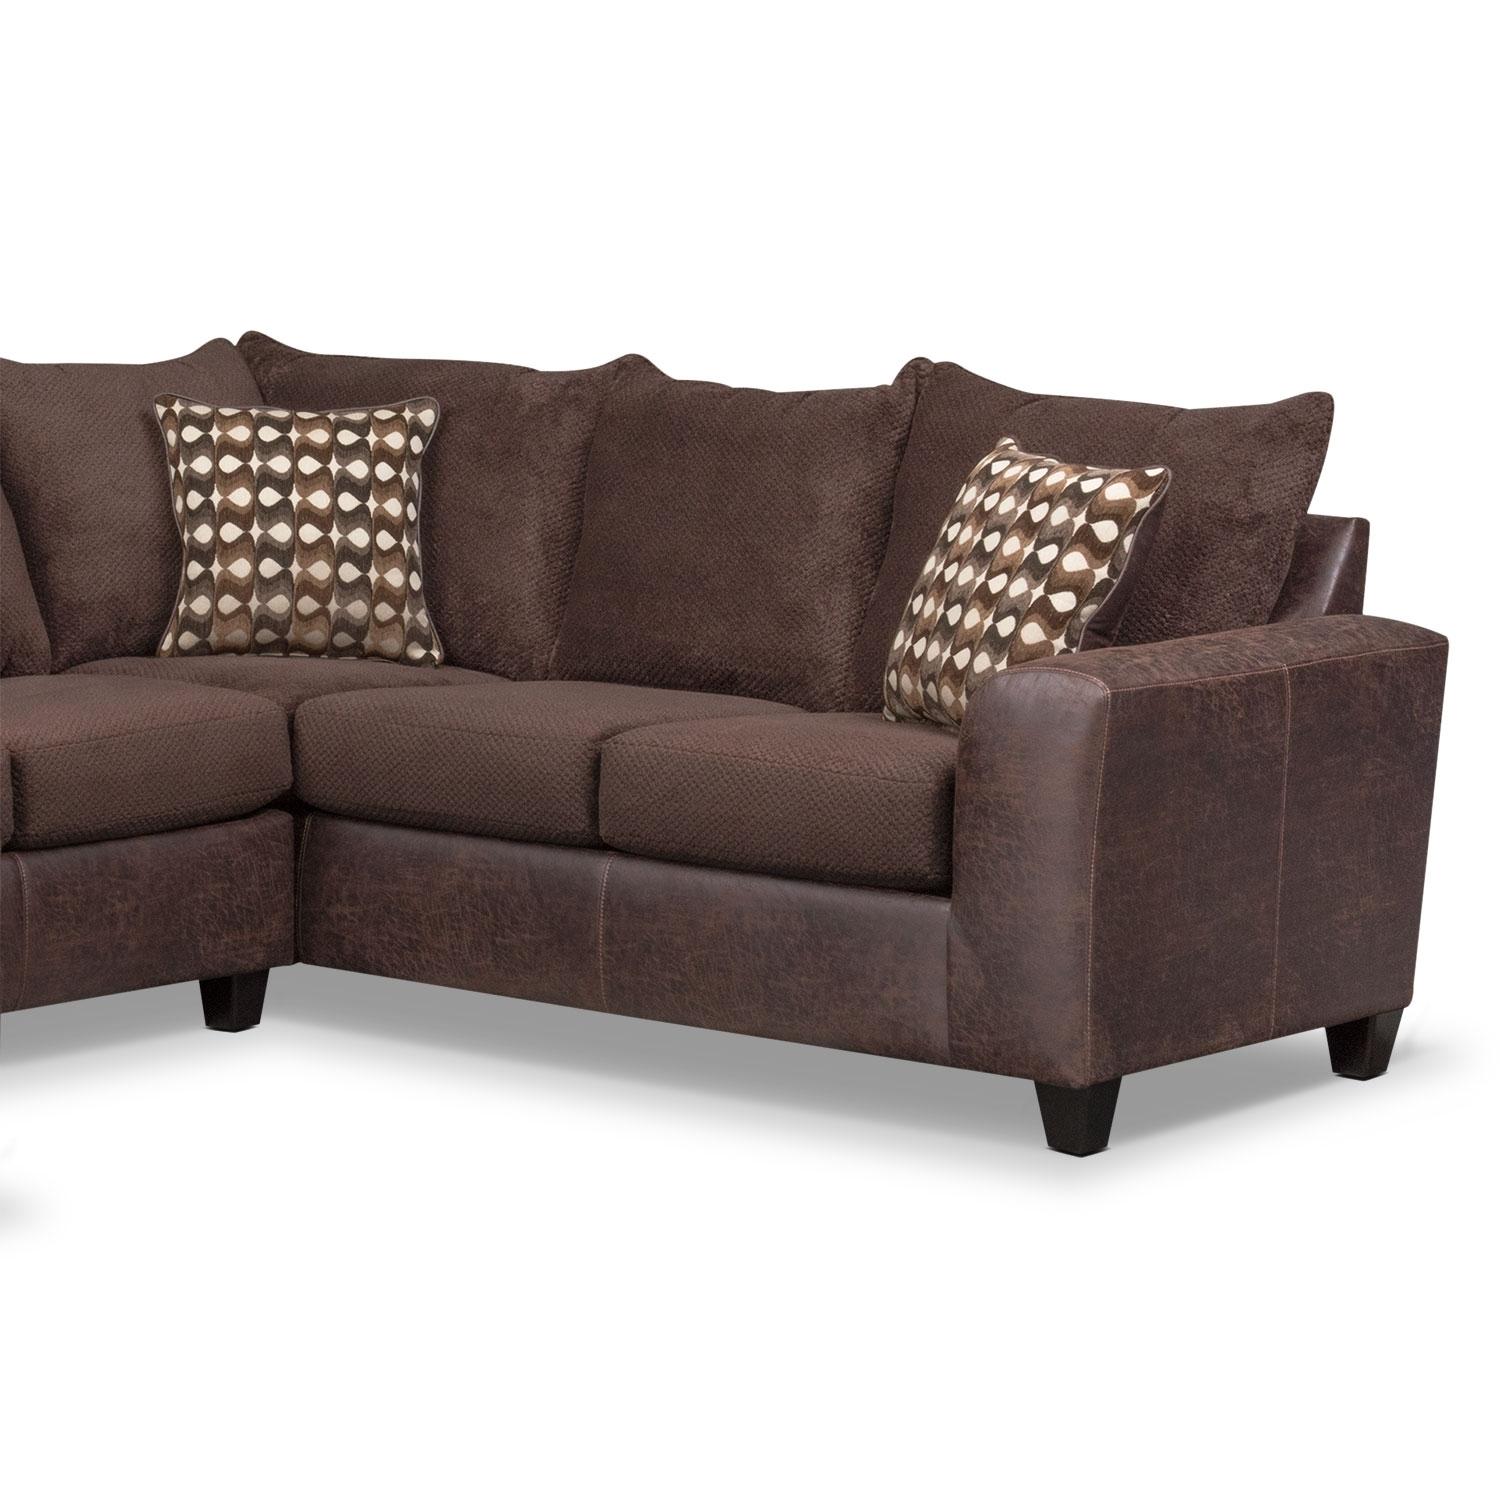 Sectional Sofa 3 Piece With Chaise Brando Modular Chocolate Value Pertaining To Evan 2 Piece Sectionals With Raf Chaise (Image 23 of 25)